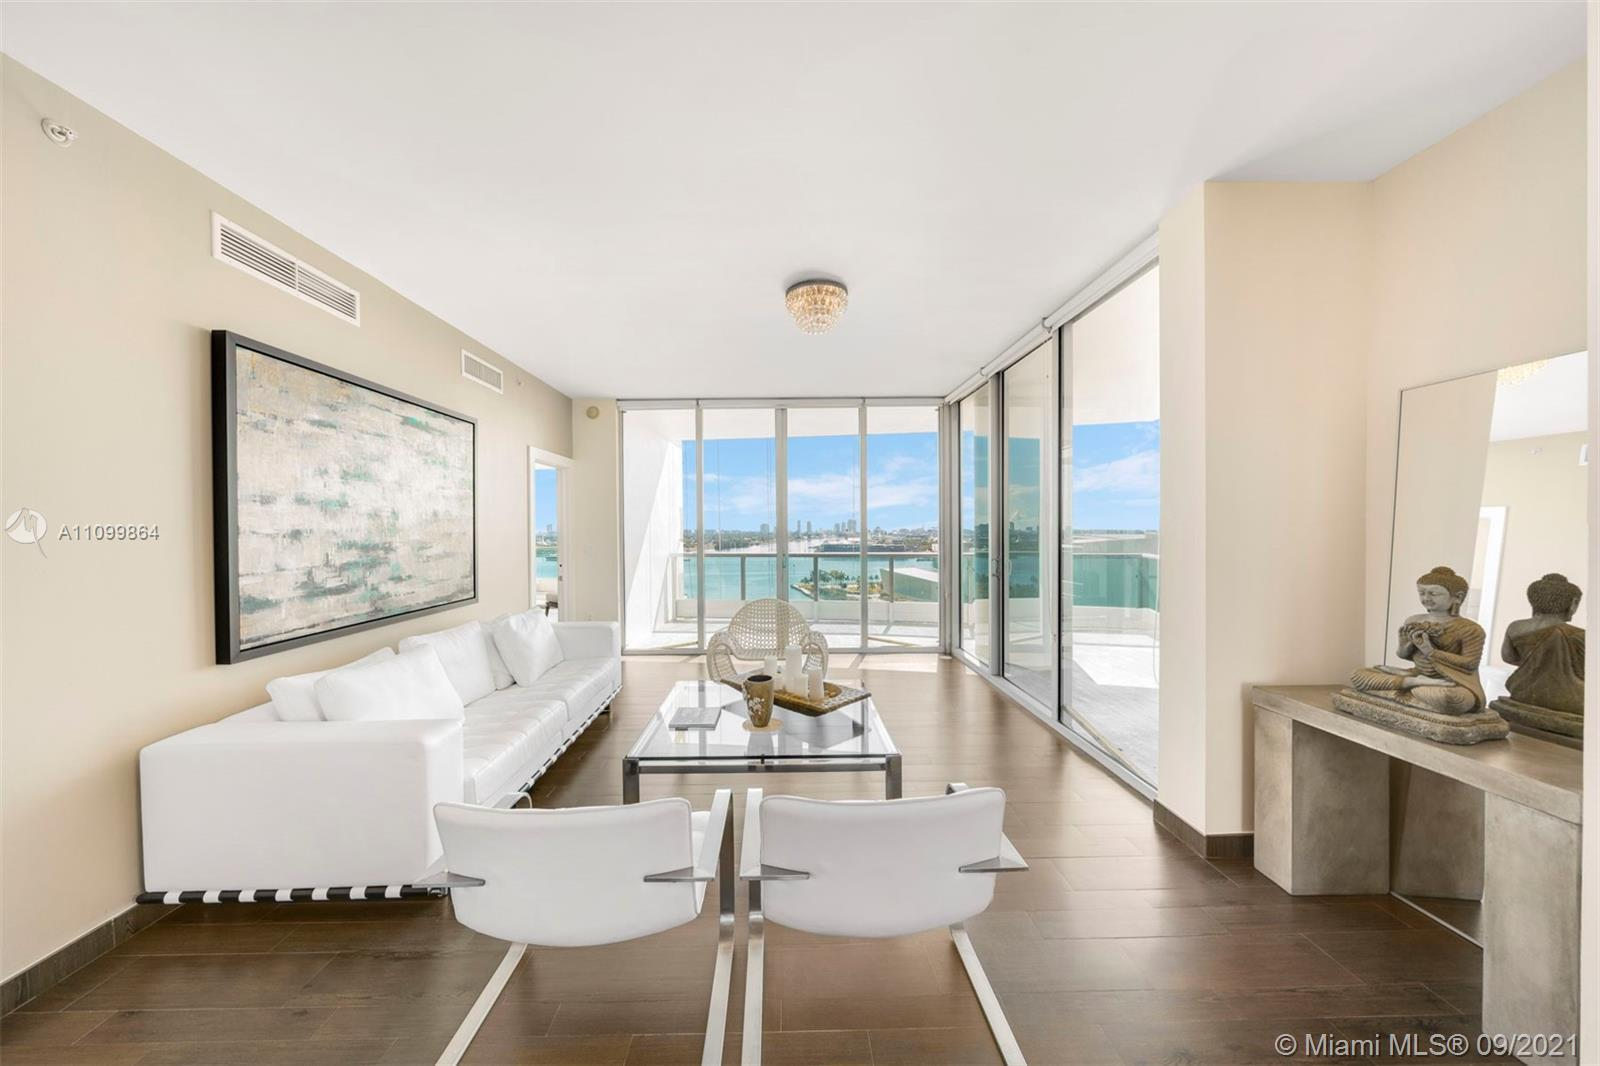 A beautiful and bright 2 Bedroom + Den/3.5 Bath flow-through corner unit at 900 Biscayne Bay with 1,